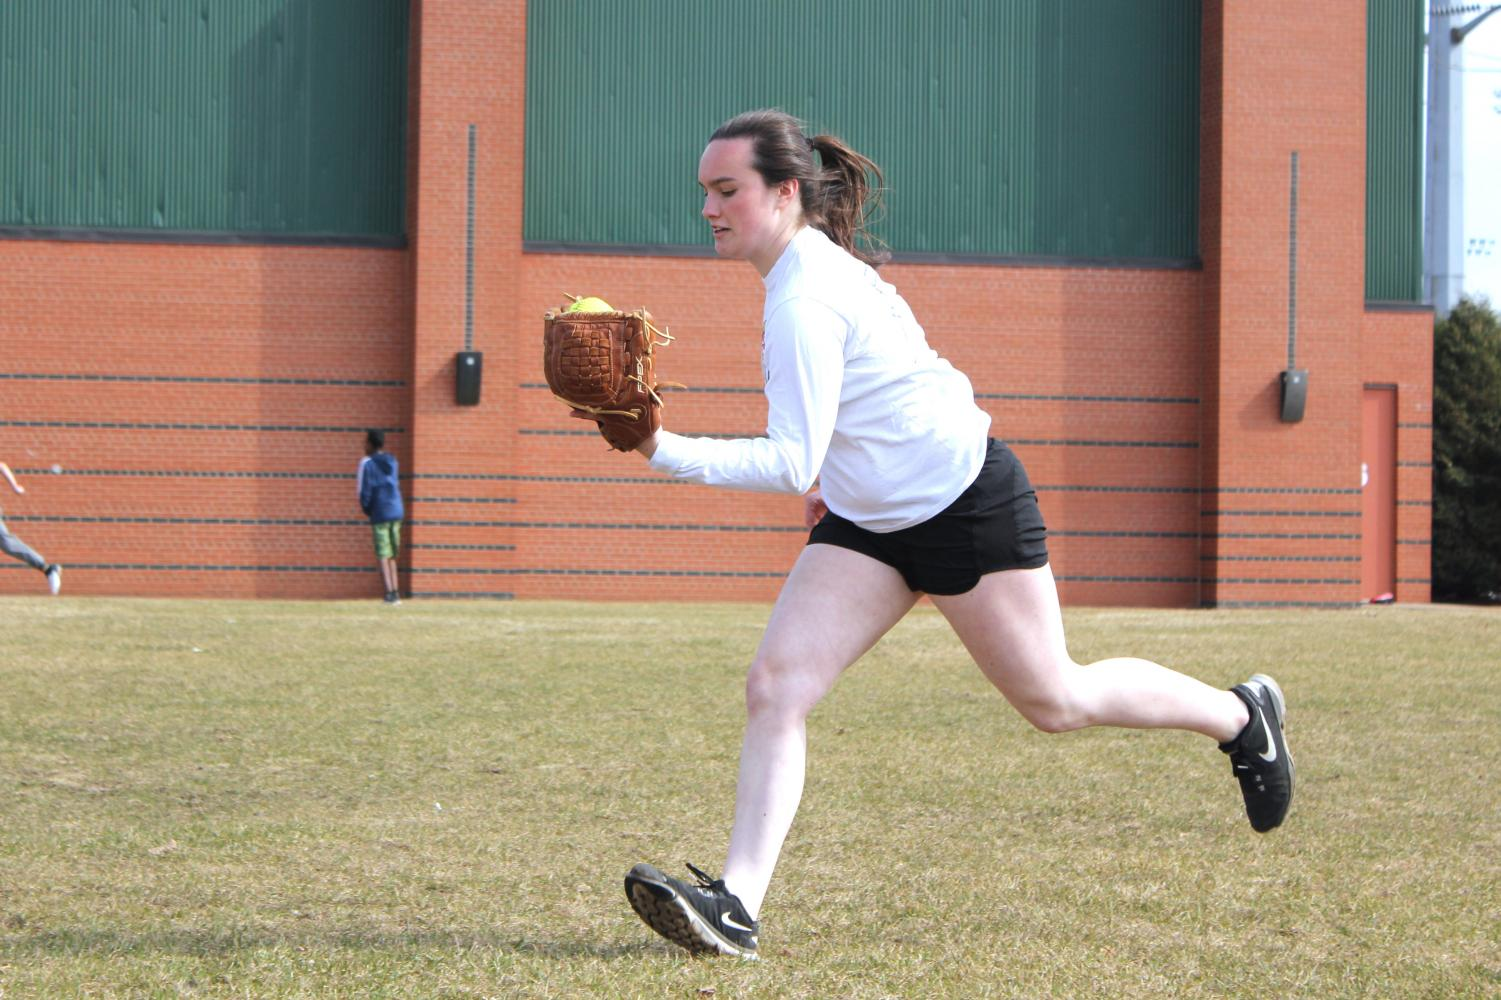 Senior Annabelle Schutte catches a ball during a drill in softball practice April 24. Varsity softball team will be playing Cooper at 4:30 p.m. April 26 at Aquila Fields.